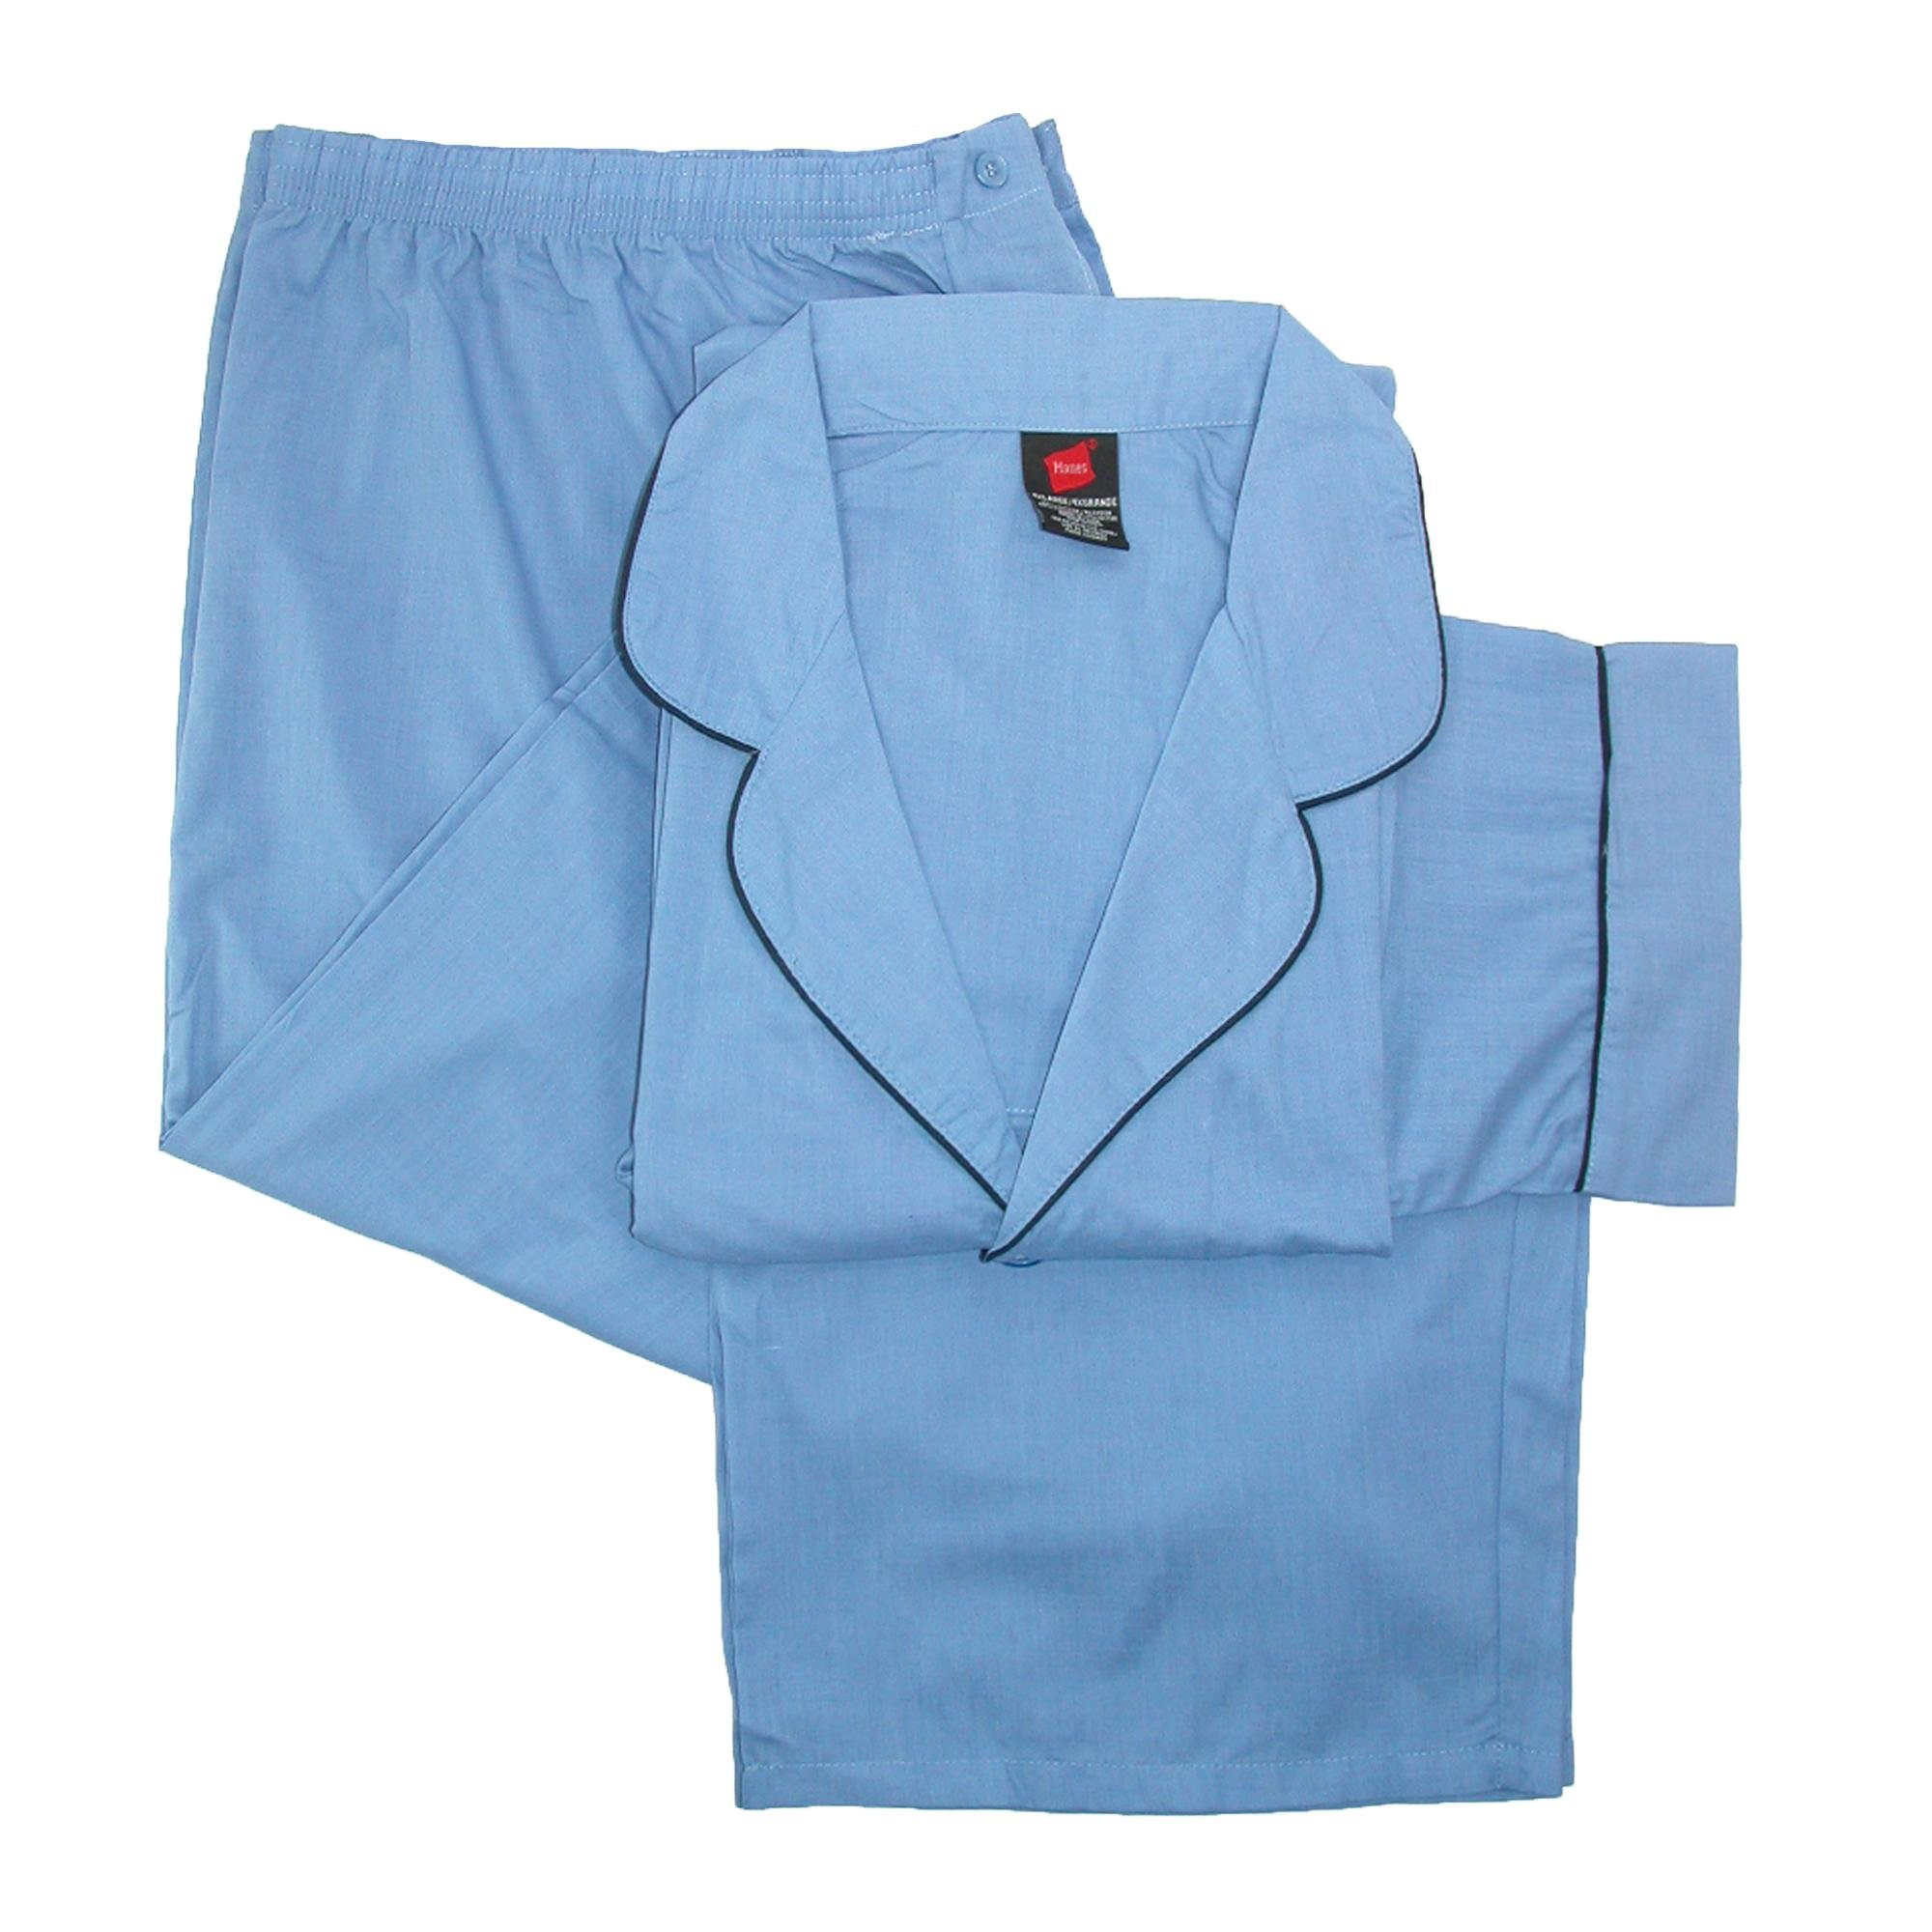 Hanes Men's Tall Size Long Sleeve Long Leg Pajamas, 2XLT, Blue